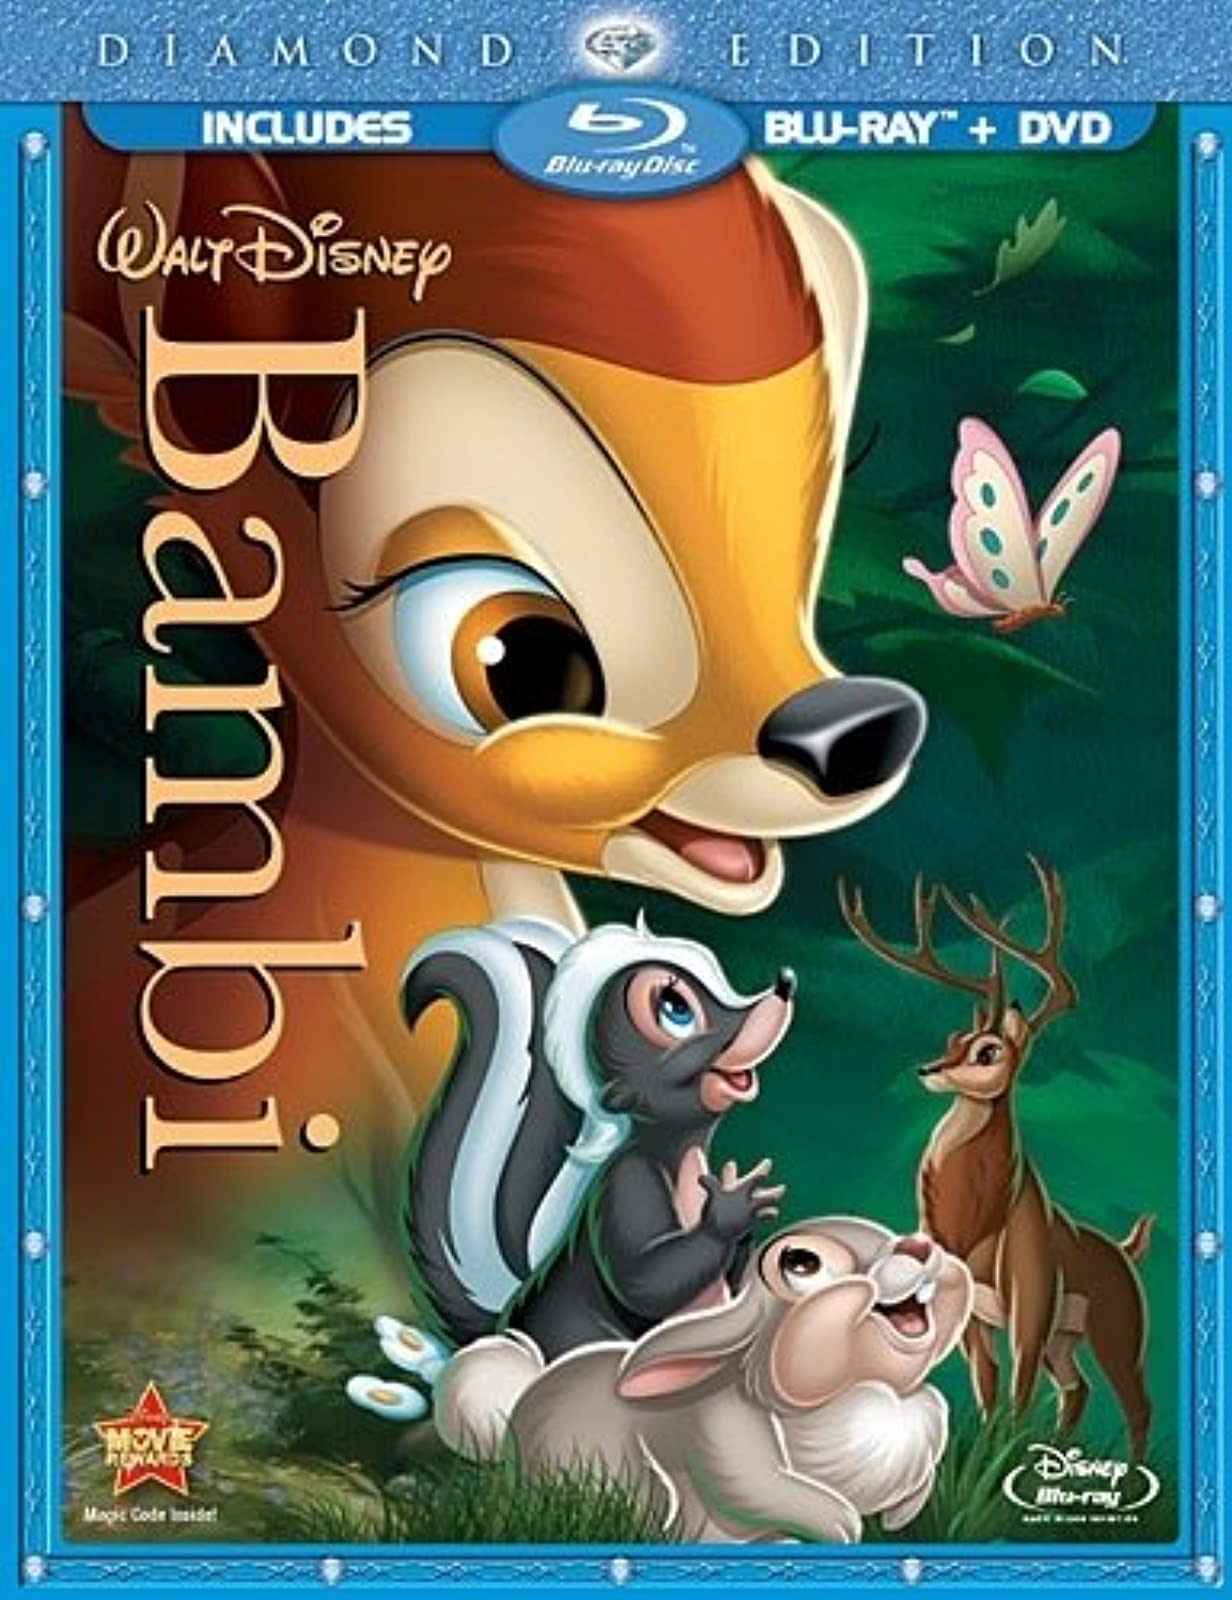 Bambi Two-Disc Diamond Edition Blu-Ray/dvd Combo In Blu-Ray Packaging With Hardy